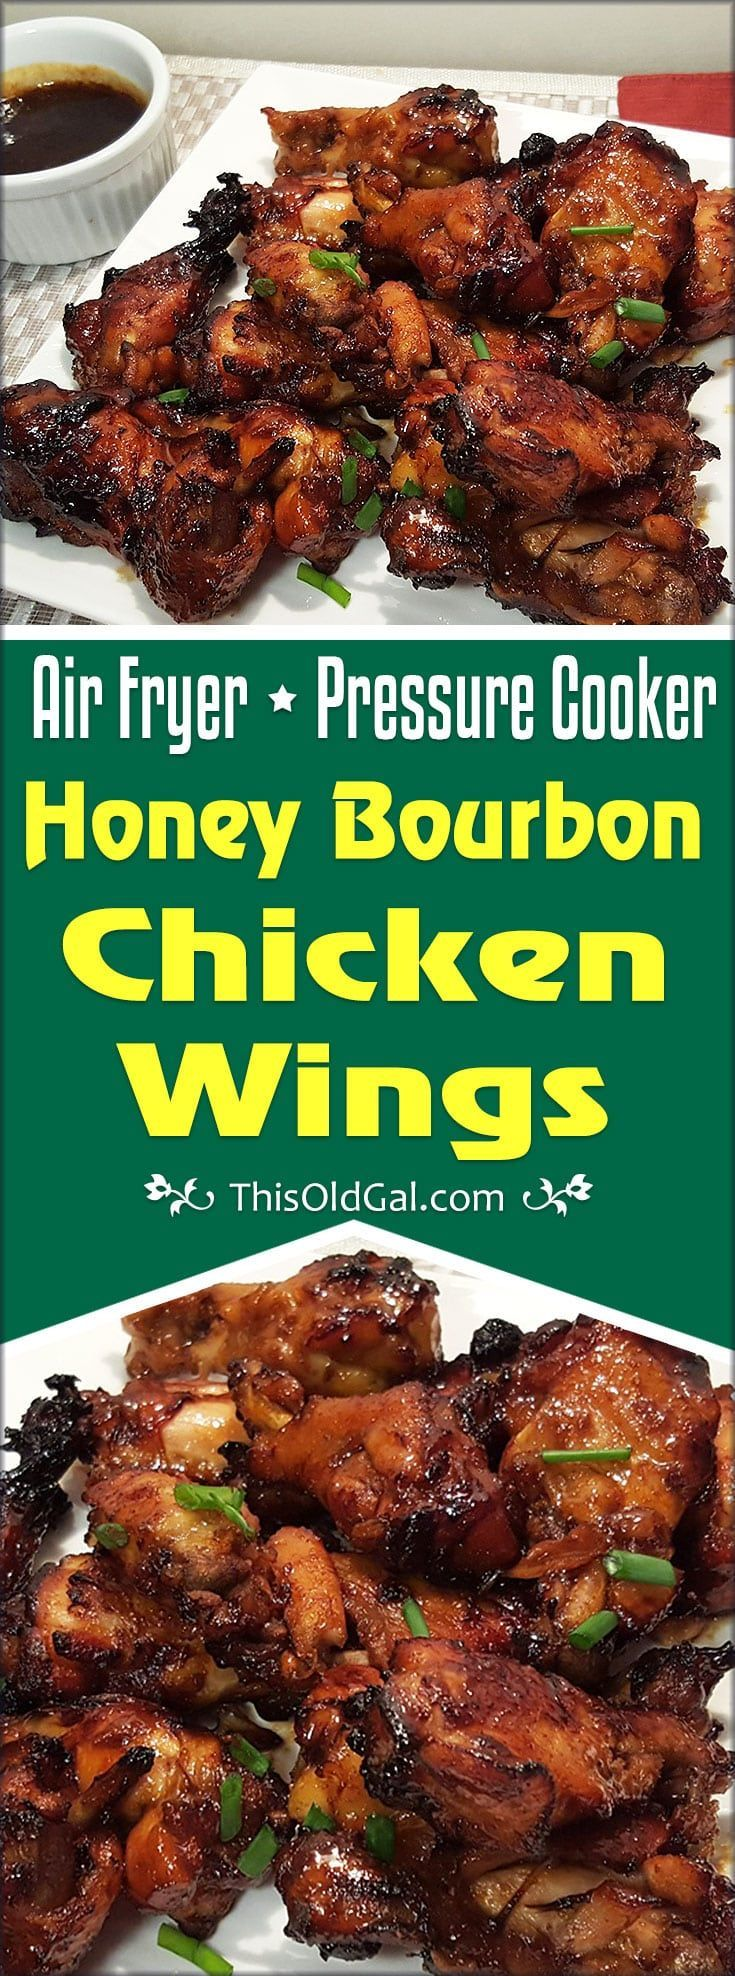 Air Fryer Pressure Cooker Honey Bourbon Chicken Wings | This Old Gal